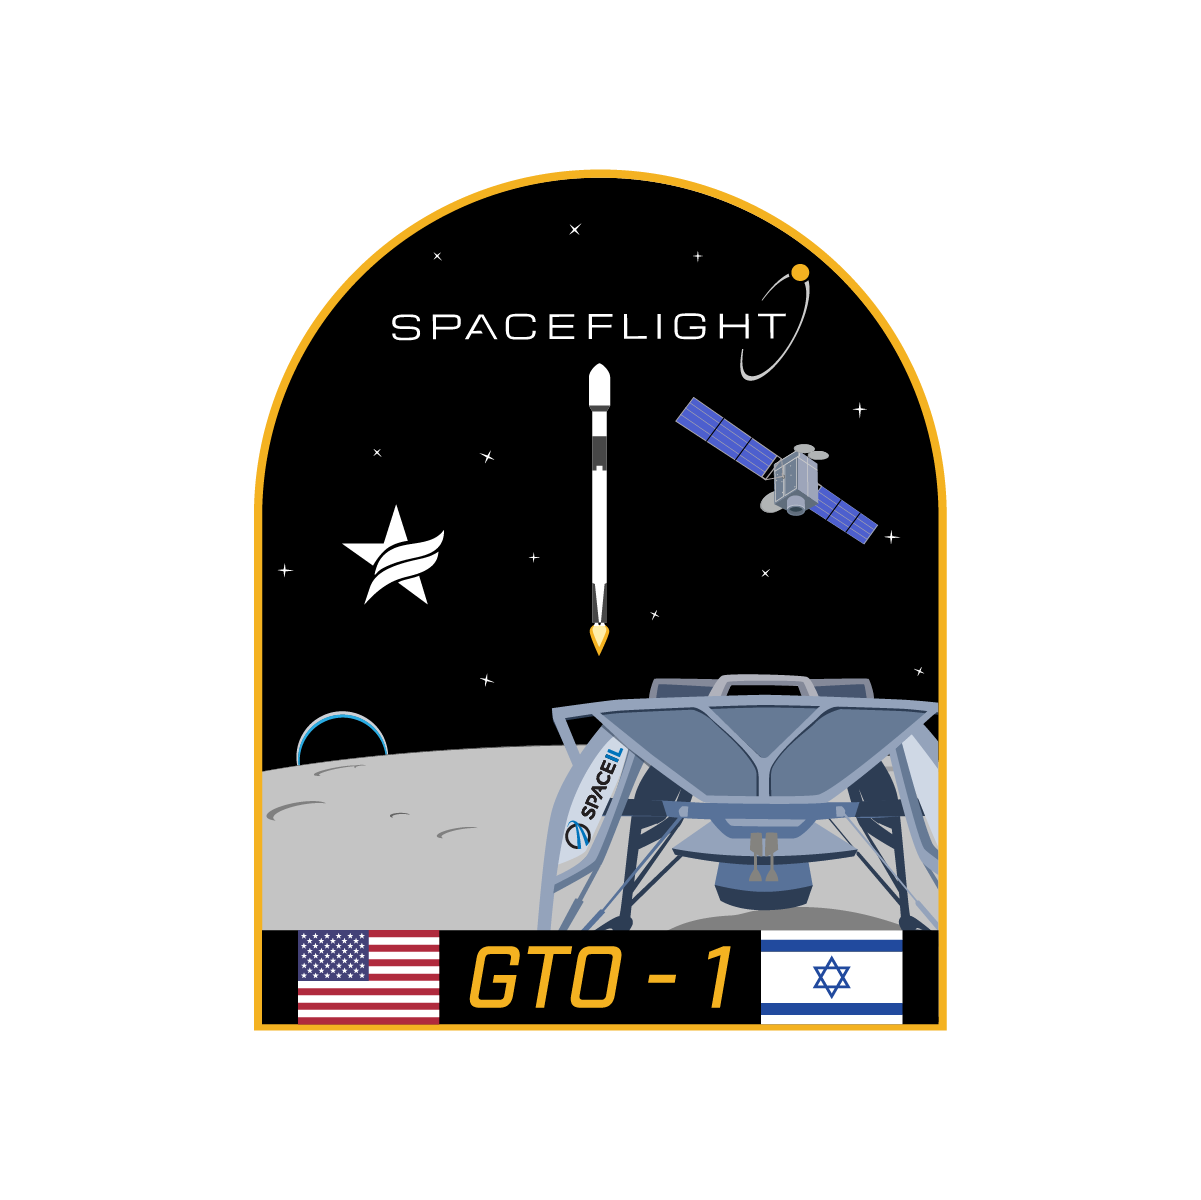 GTO-1 mission patch (Spaceflight)